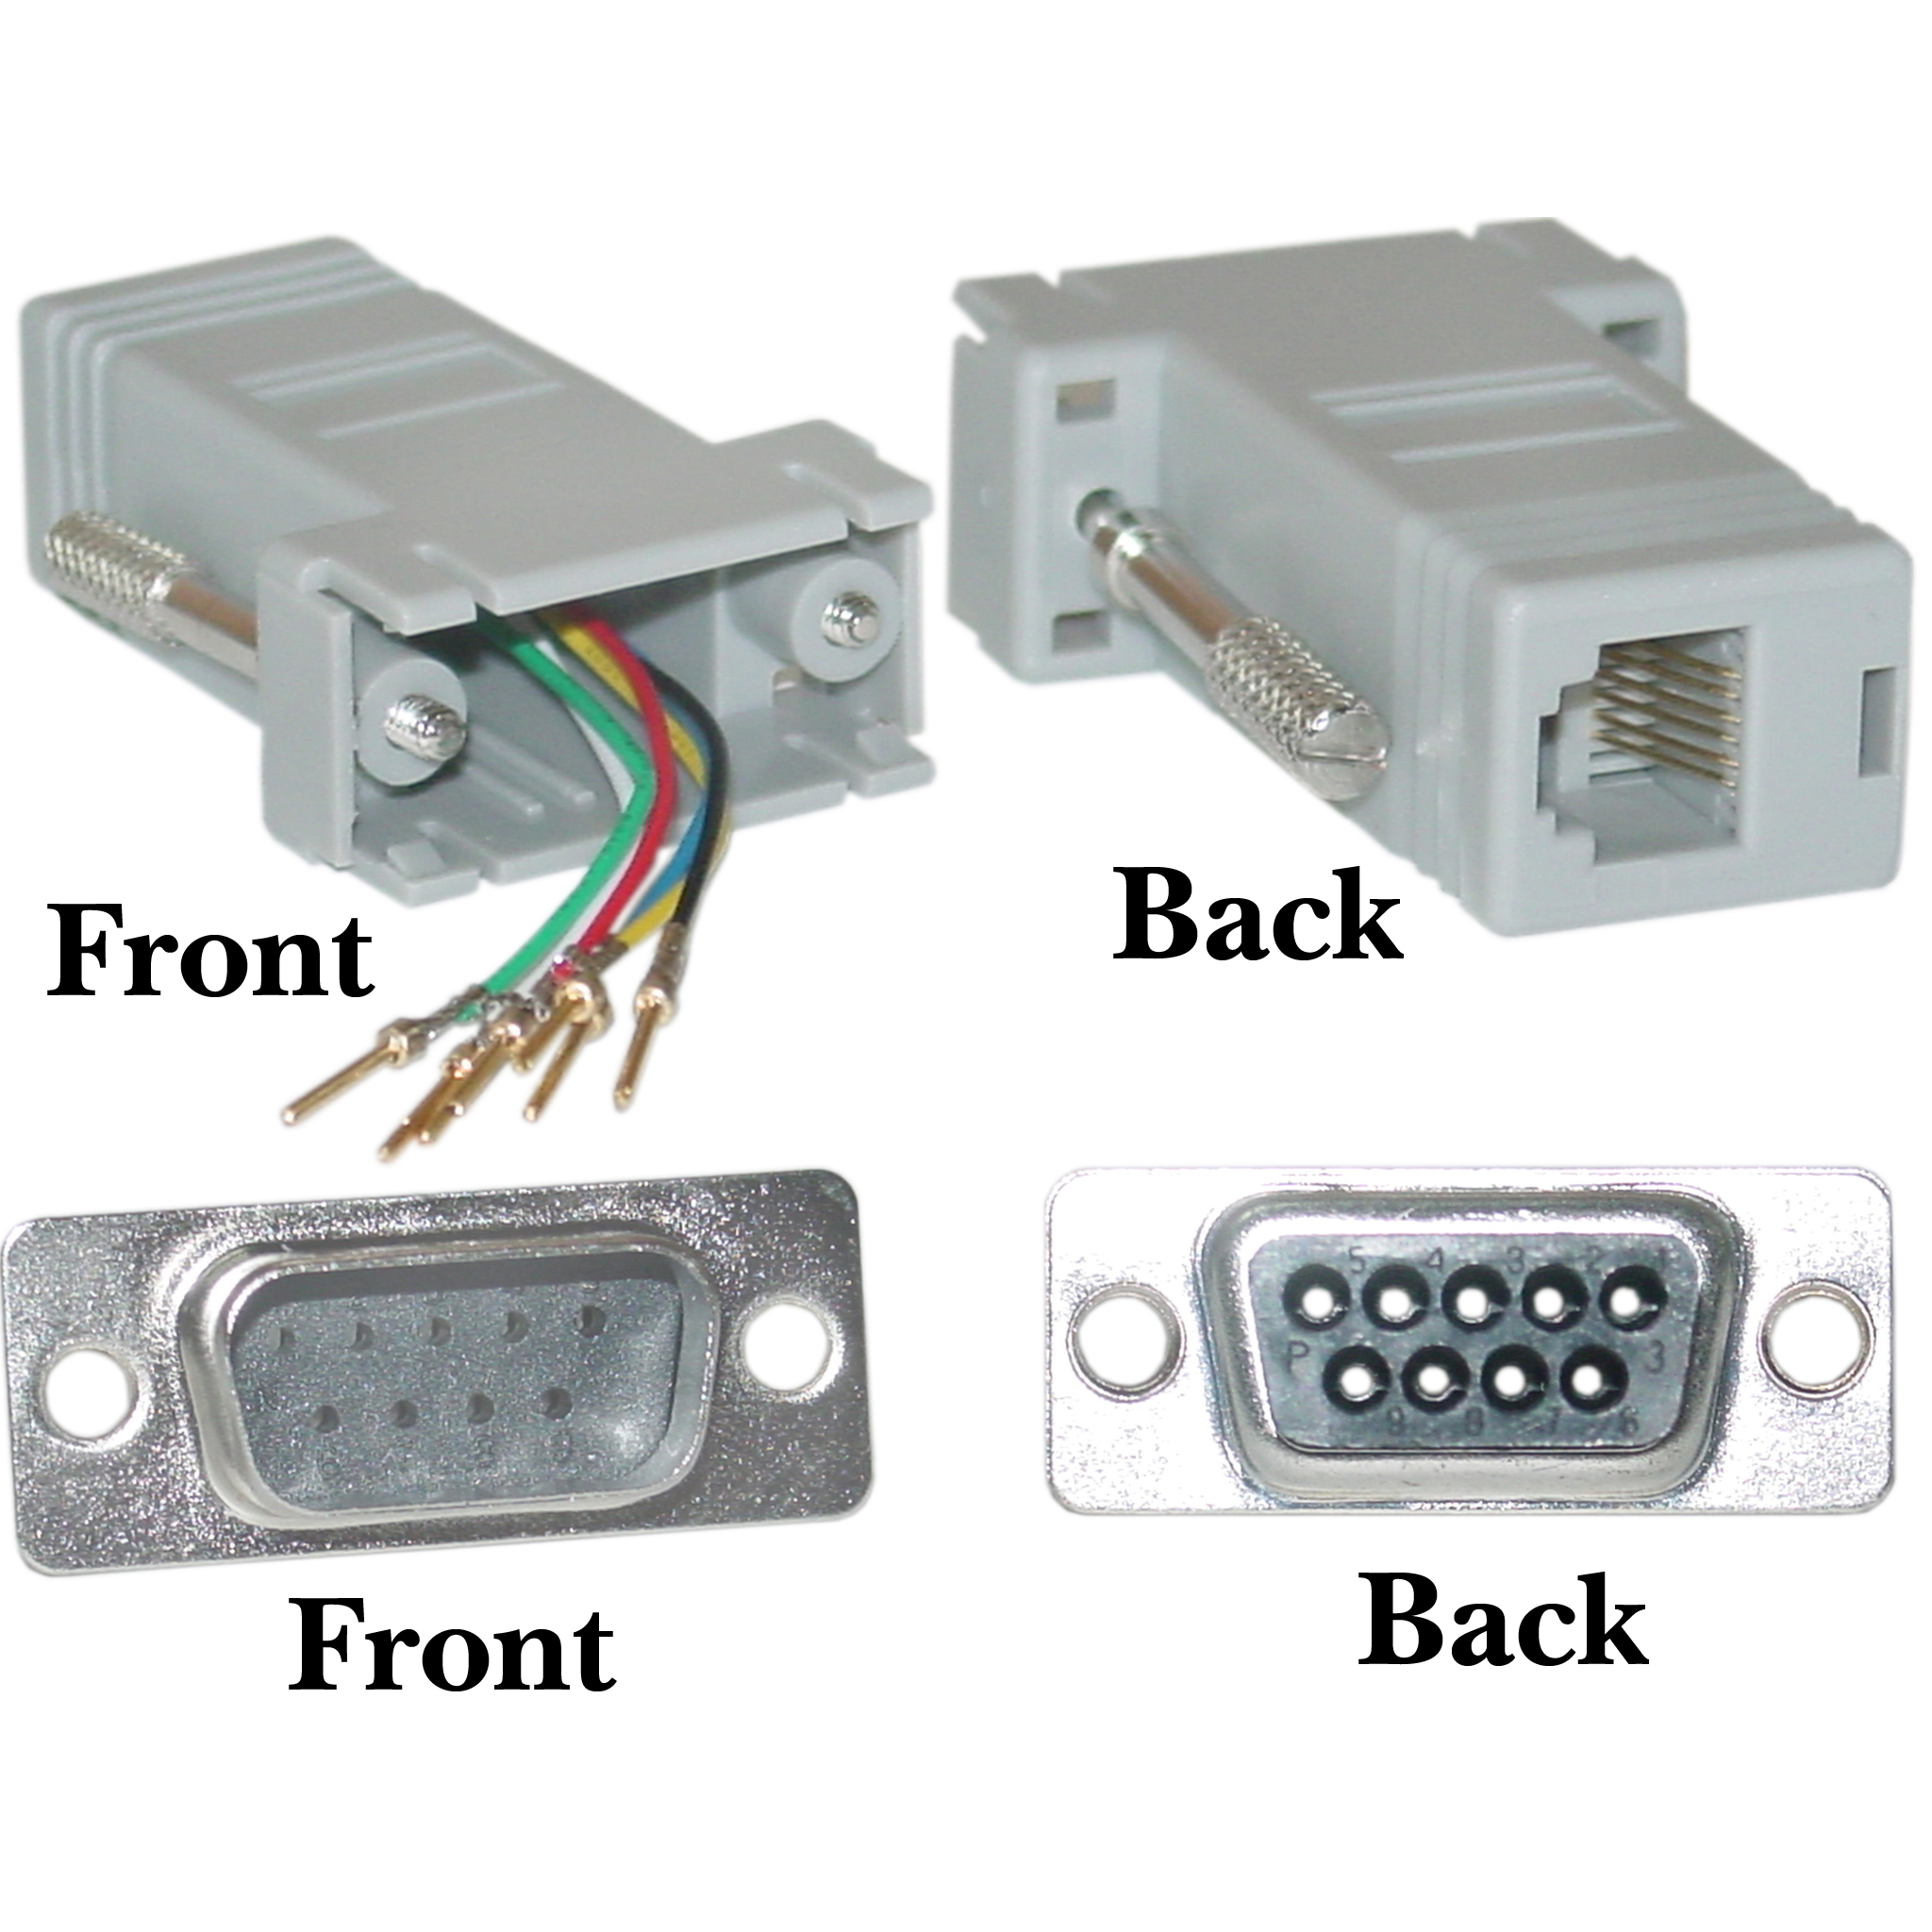 Modular Adapter, DB9 Male to RJ12, Gray